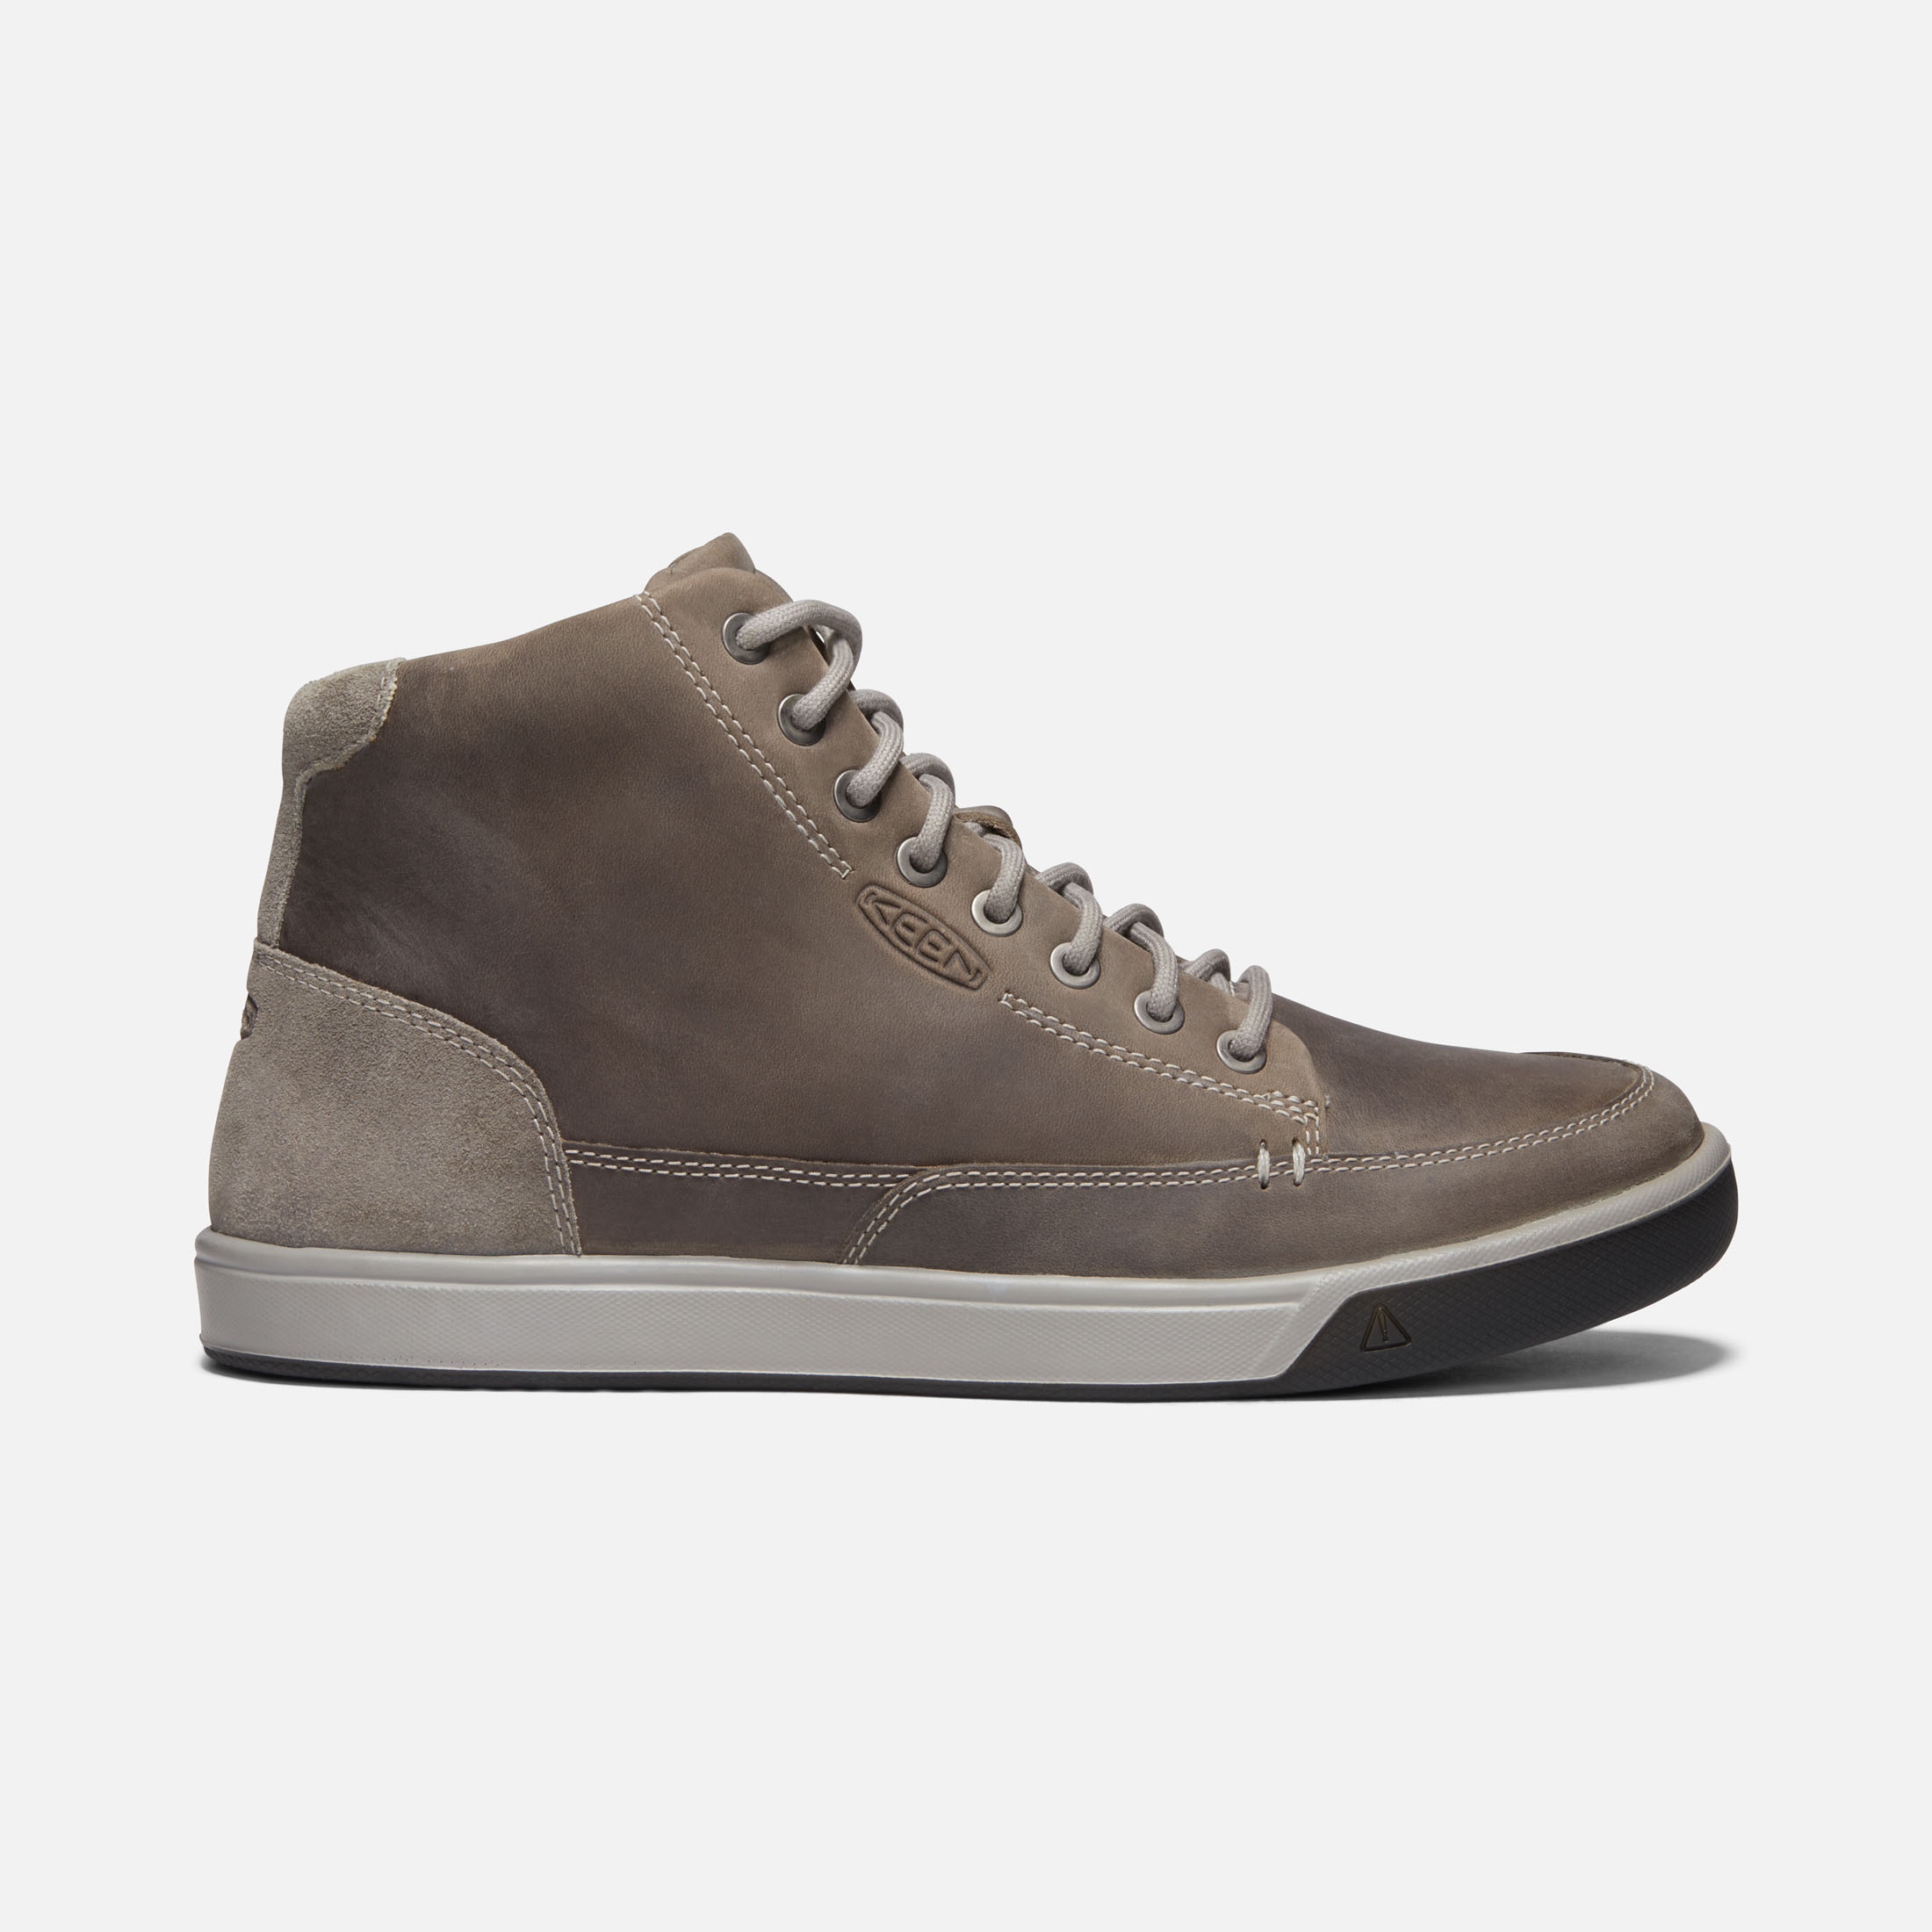 786cfe6256a Men's Glenhaven Mid Sneaker Boots - Leather Lace-Up Sneakers | KEEN Footwear